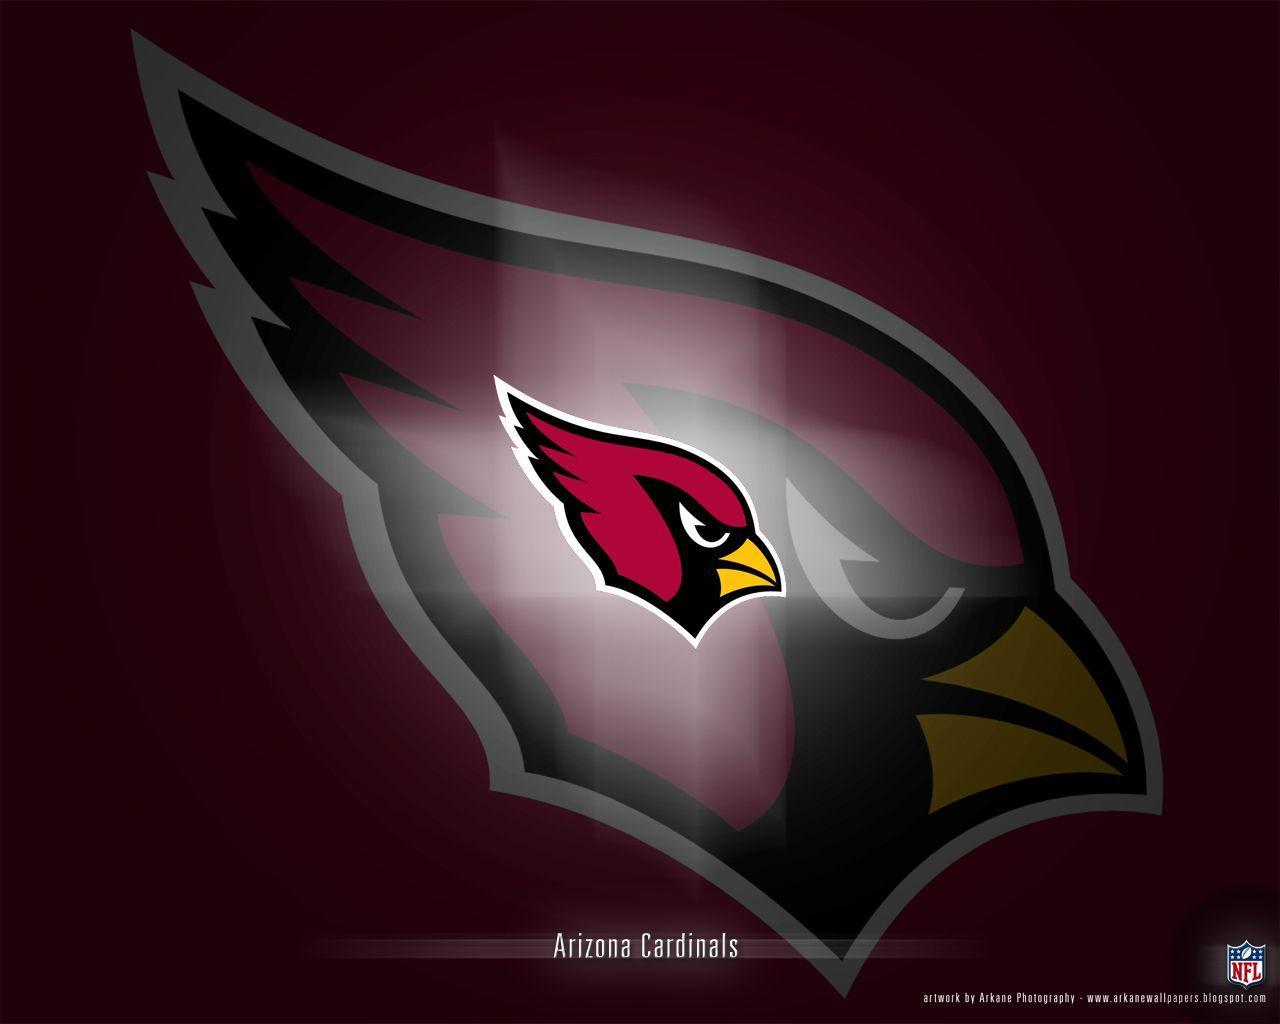 1000+ images about Arizona Cardinals on Pinterest | Arizona ...